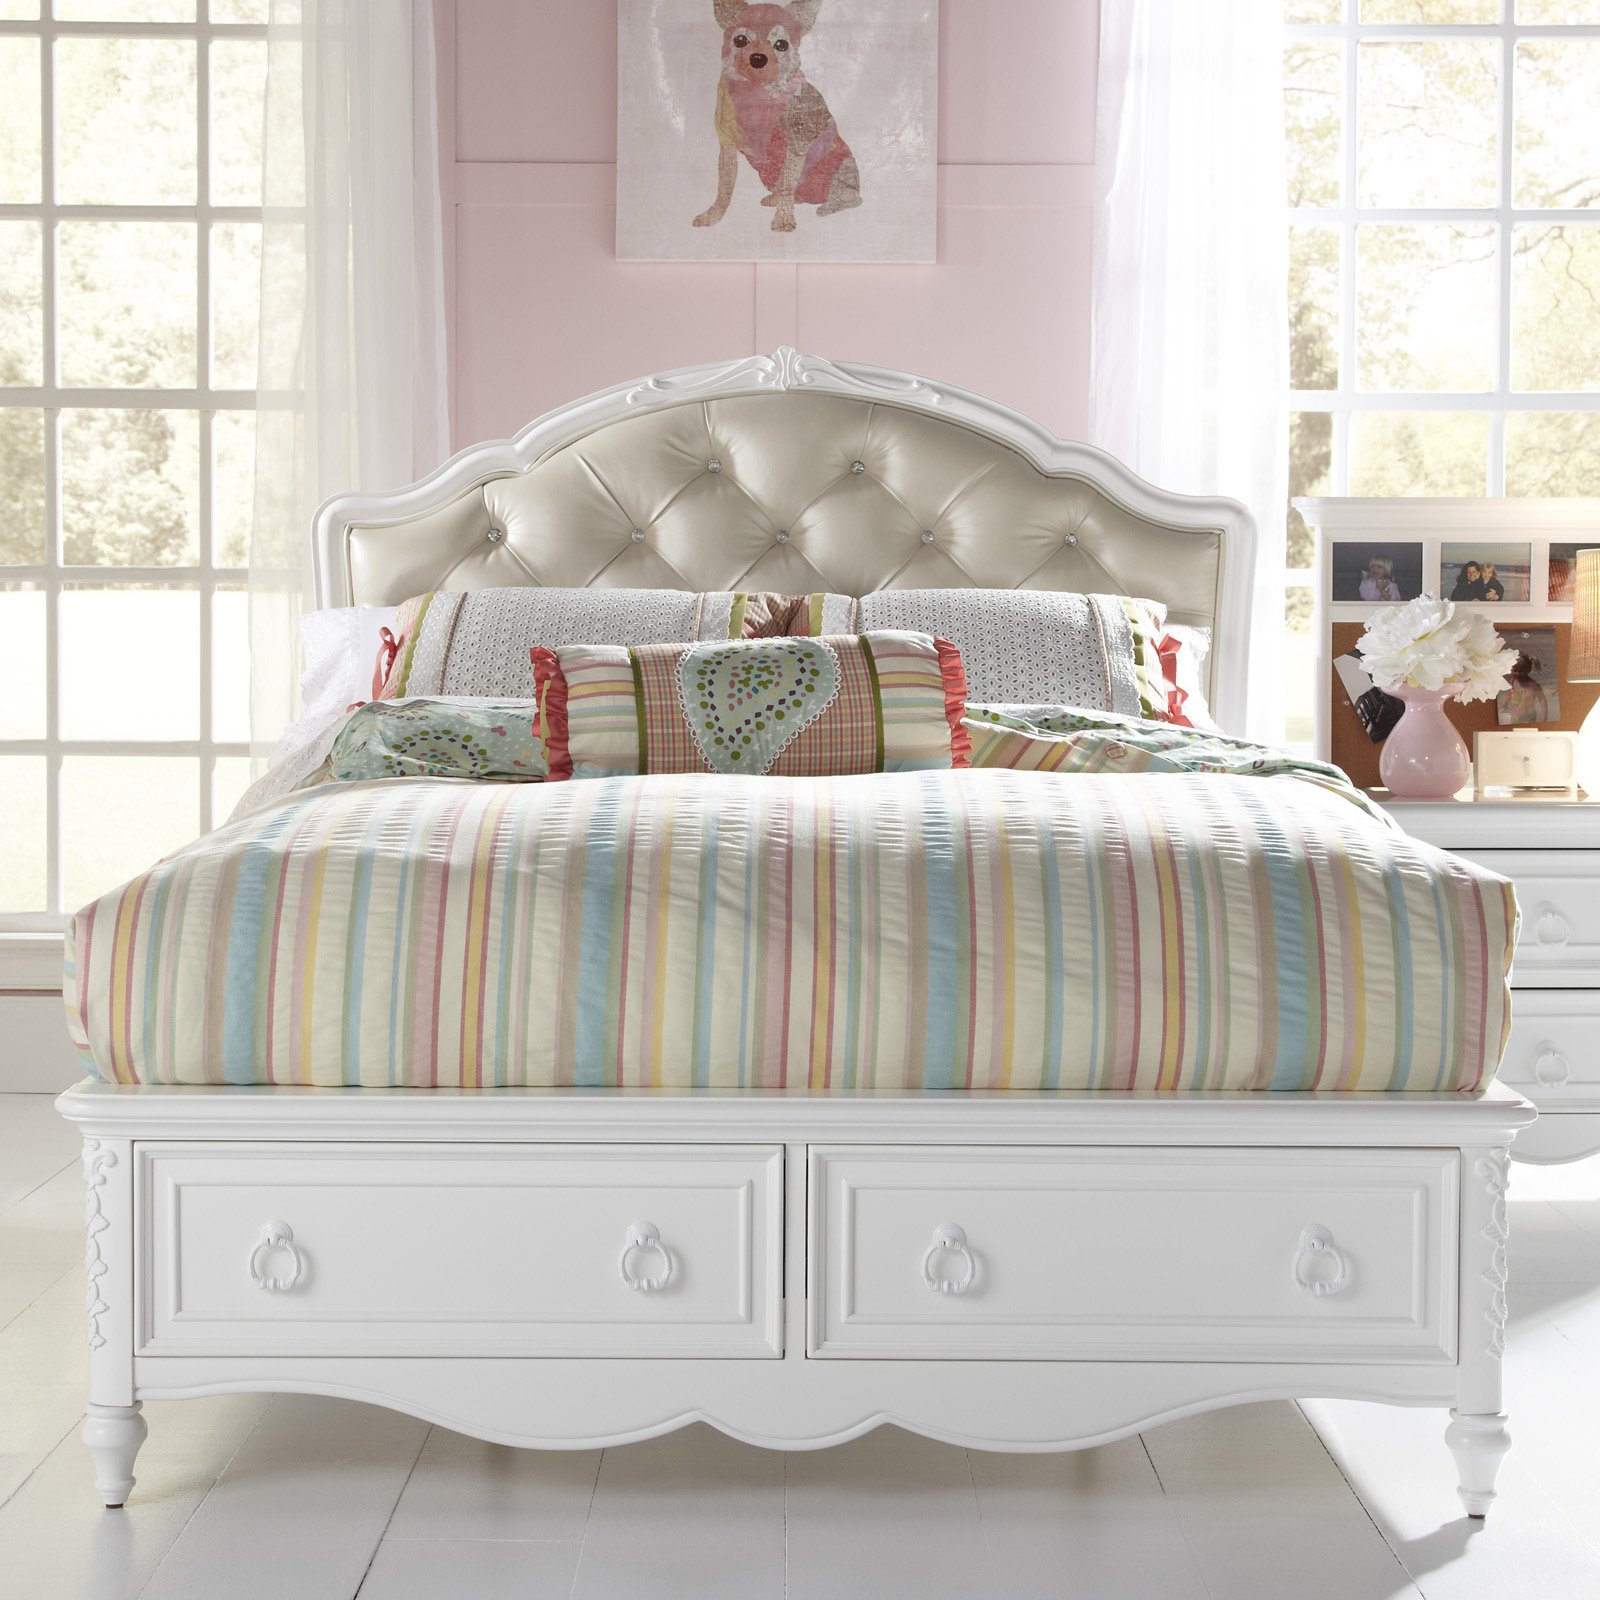 SweetHeart Upholstered Panel Bed - White - Walmart.com